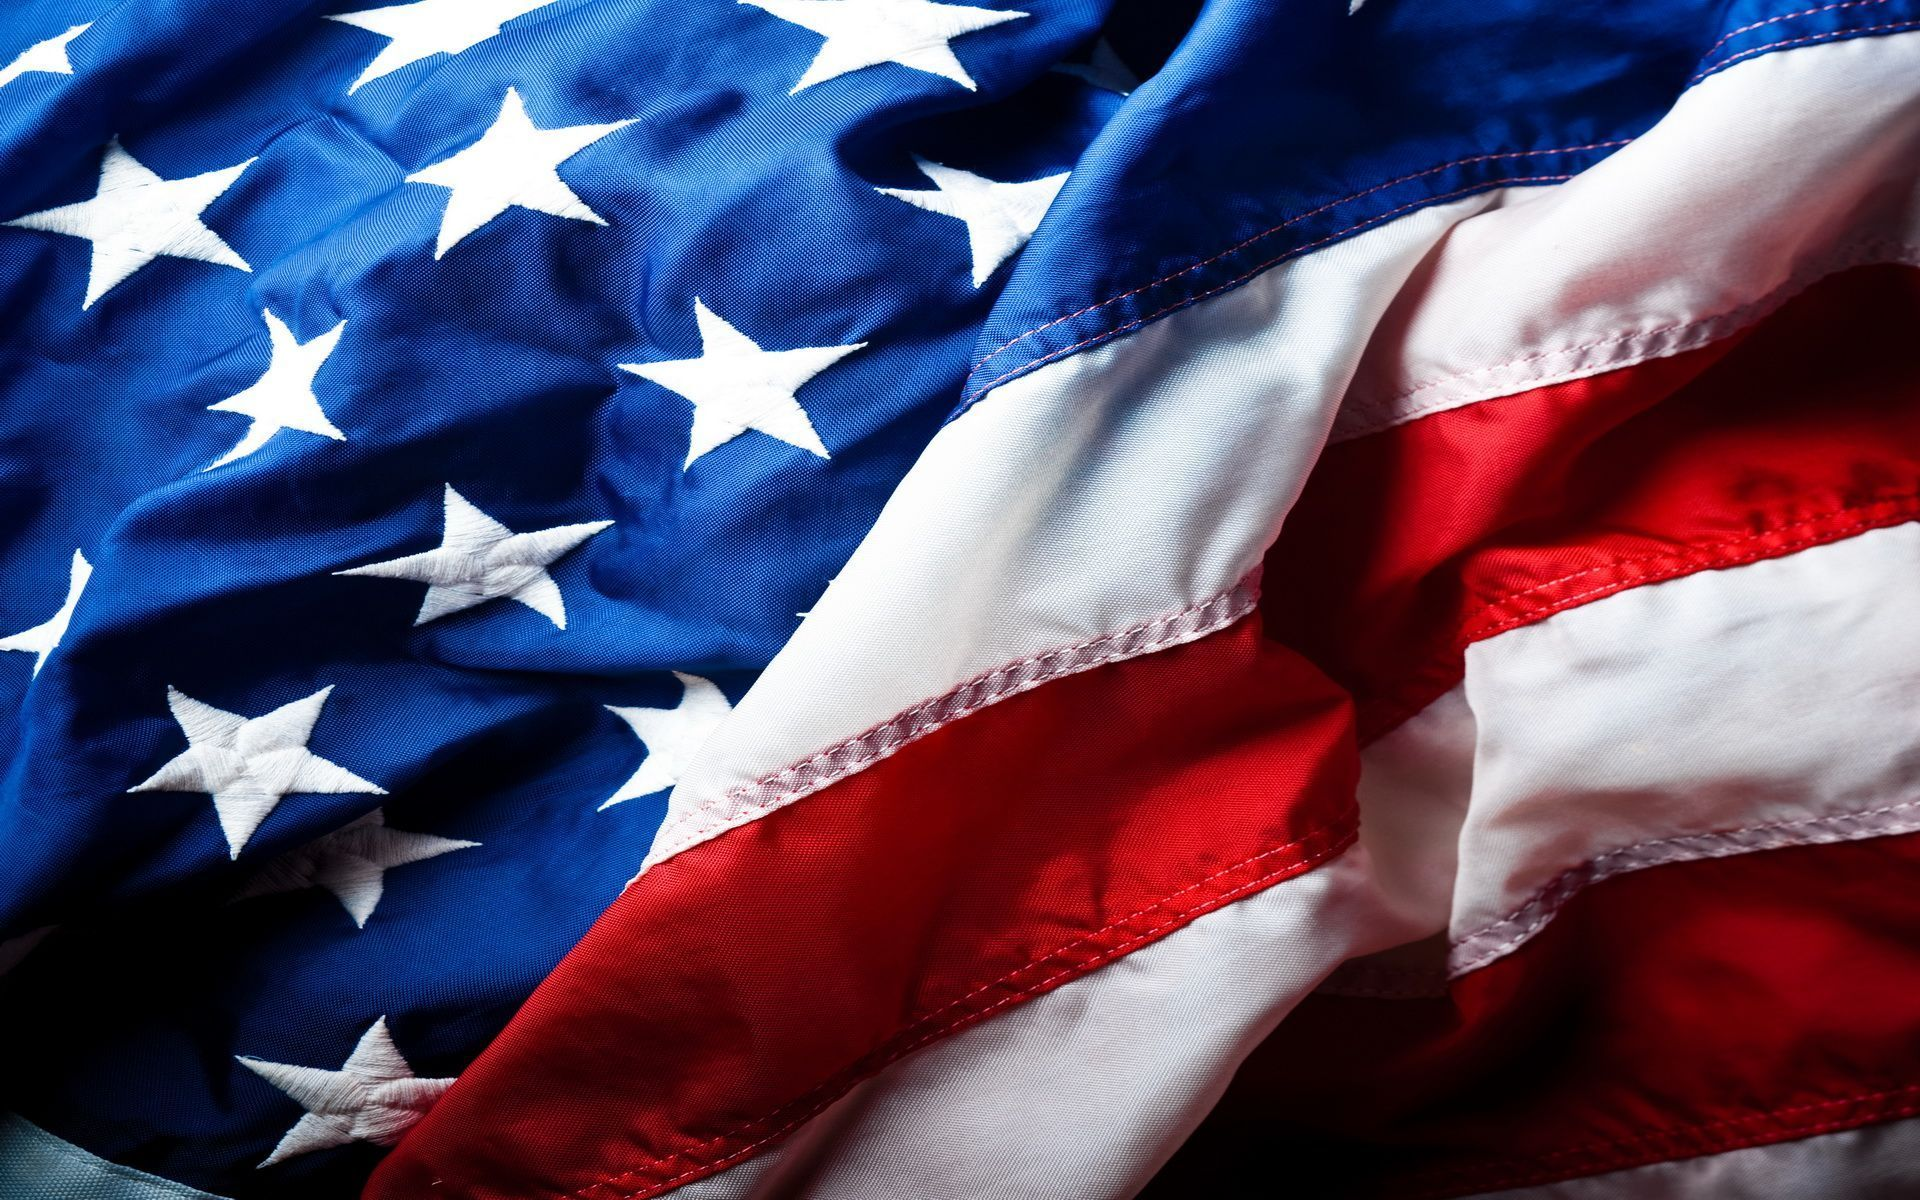 American Flag HD Wallpapers - Top Free American Flag HD